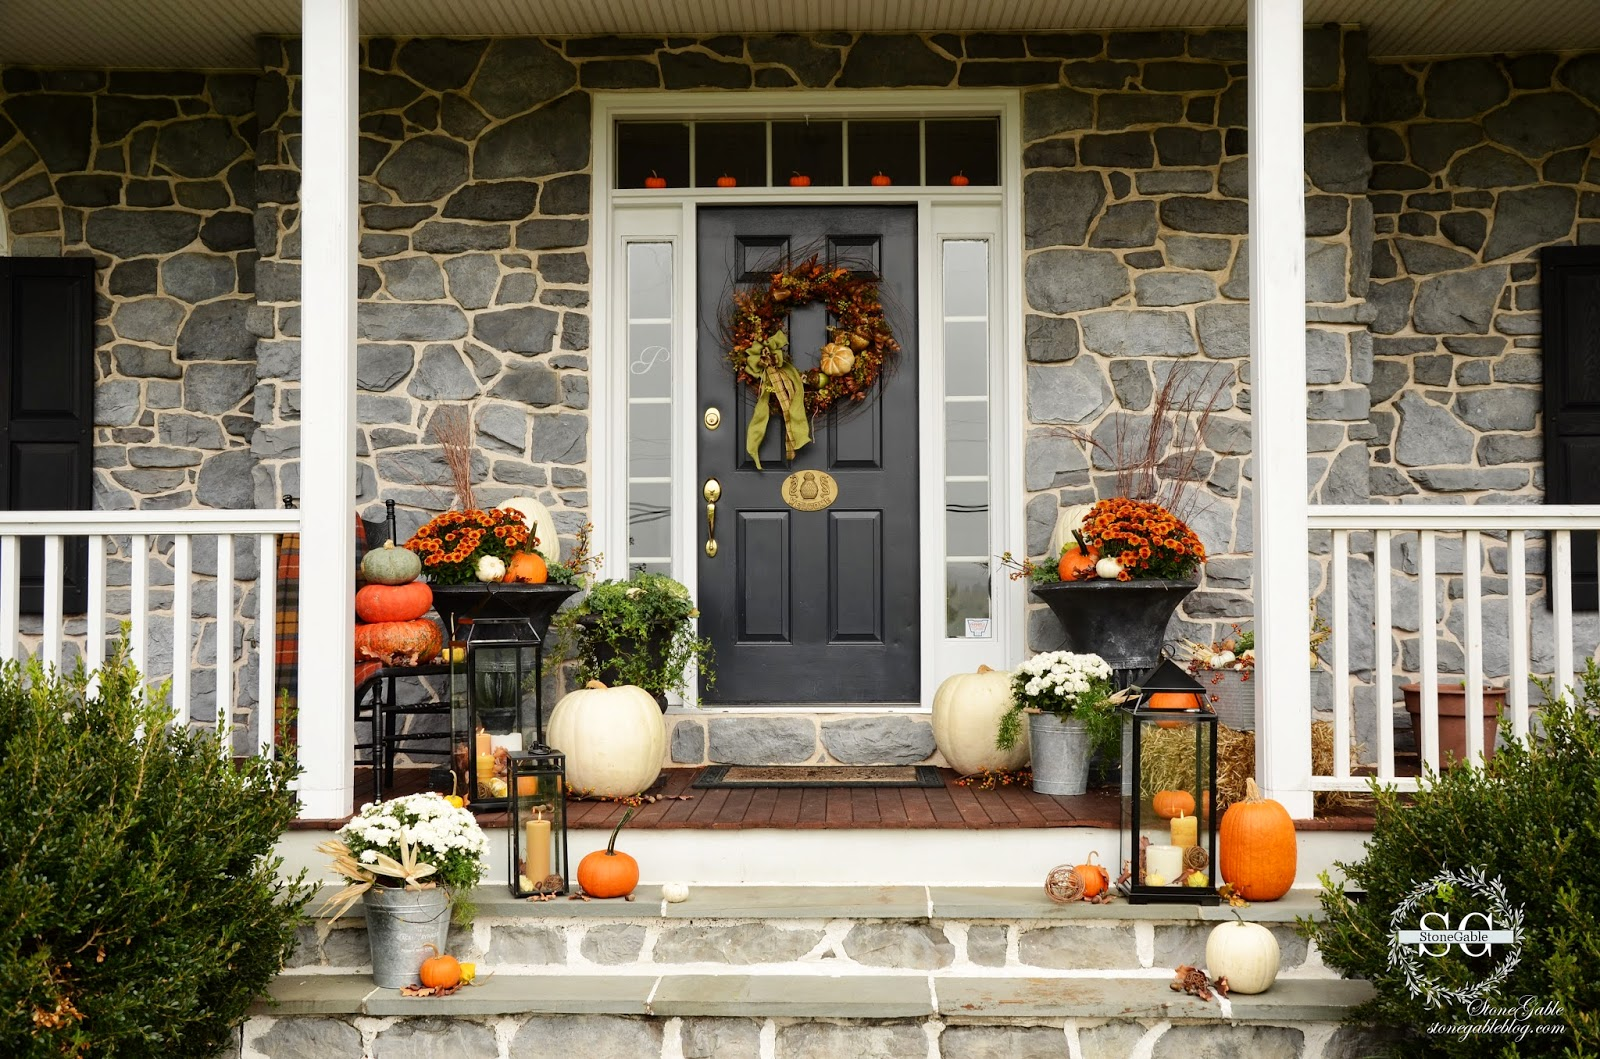 Fall porch décor, http://screamingwifi.com, wifi, wi-fi, internet service, Home audio system, multi-room music system, sonos, casatunes, home speakers, house speakers, house sound system, http://automated-lifestyles.com, automated lifestyles, automated lifestyles Moscow pa, automated lifestyles Pennsylvania, home automation, home monitoring, automated home, automatic home, smart home, automatic window blinds, automatic window shades, surveillance camera, home security, business security, office security system, security system, security camera, home theater, home theater design, home theatre, home network, home control, control home ipad, control home iphone, home speakers, Lutron lights, Lutron lighting, Lighting control, automatic lighting, Multi-room music, Whole house music, Speakers, Audio visual, room music, Meeting room av, Meeting room audio visual, meeting room projector, meeting room screen, office projector, conference room, boardroom, automated meeting room, automatic meeting room, Window candles